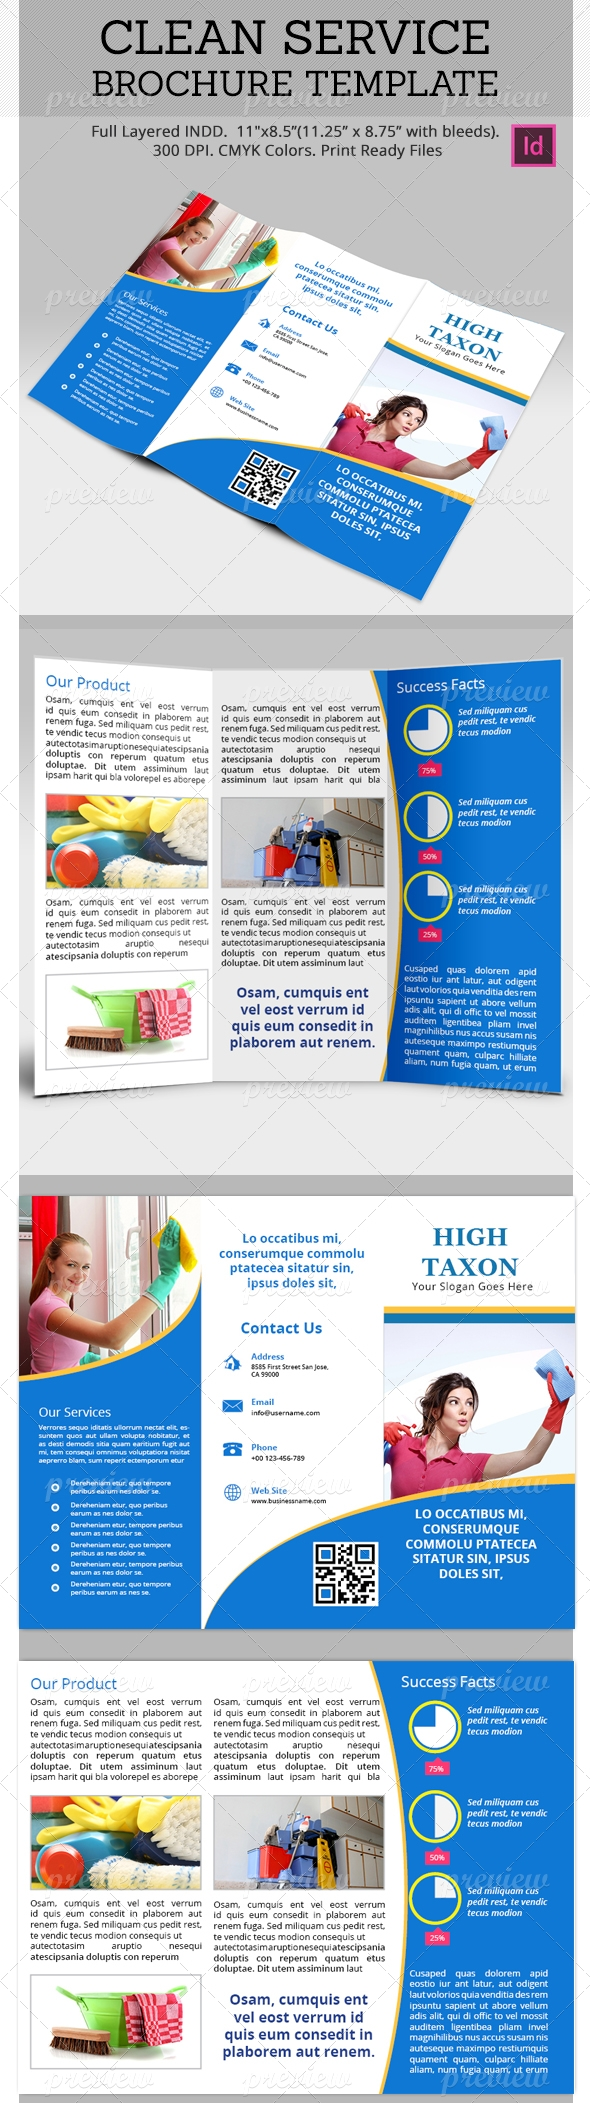 Clean Service Brochure Template  Brochure Template Brochures And